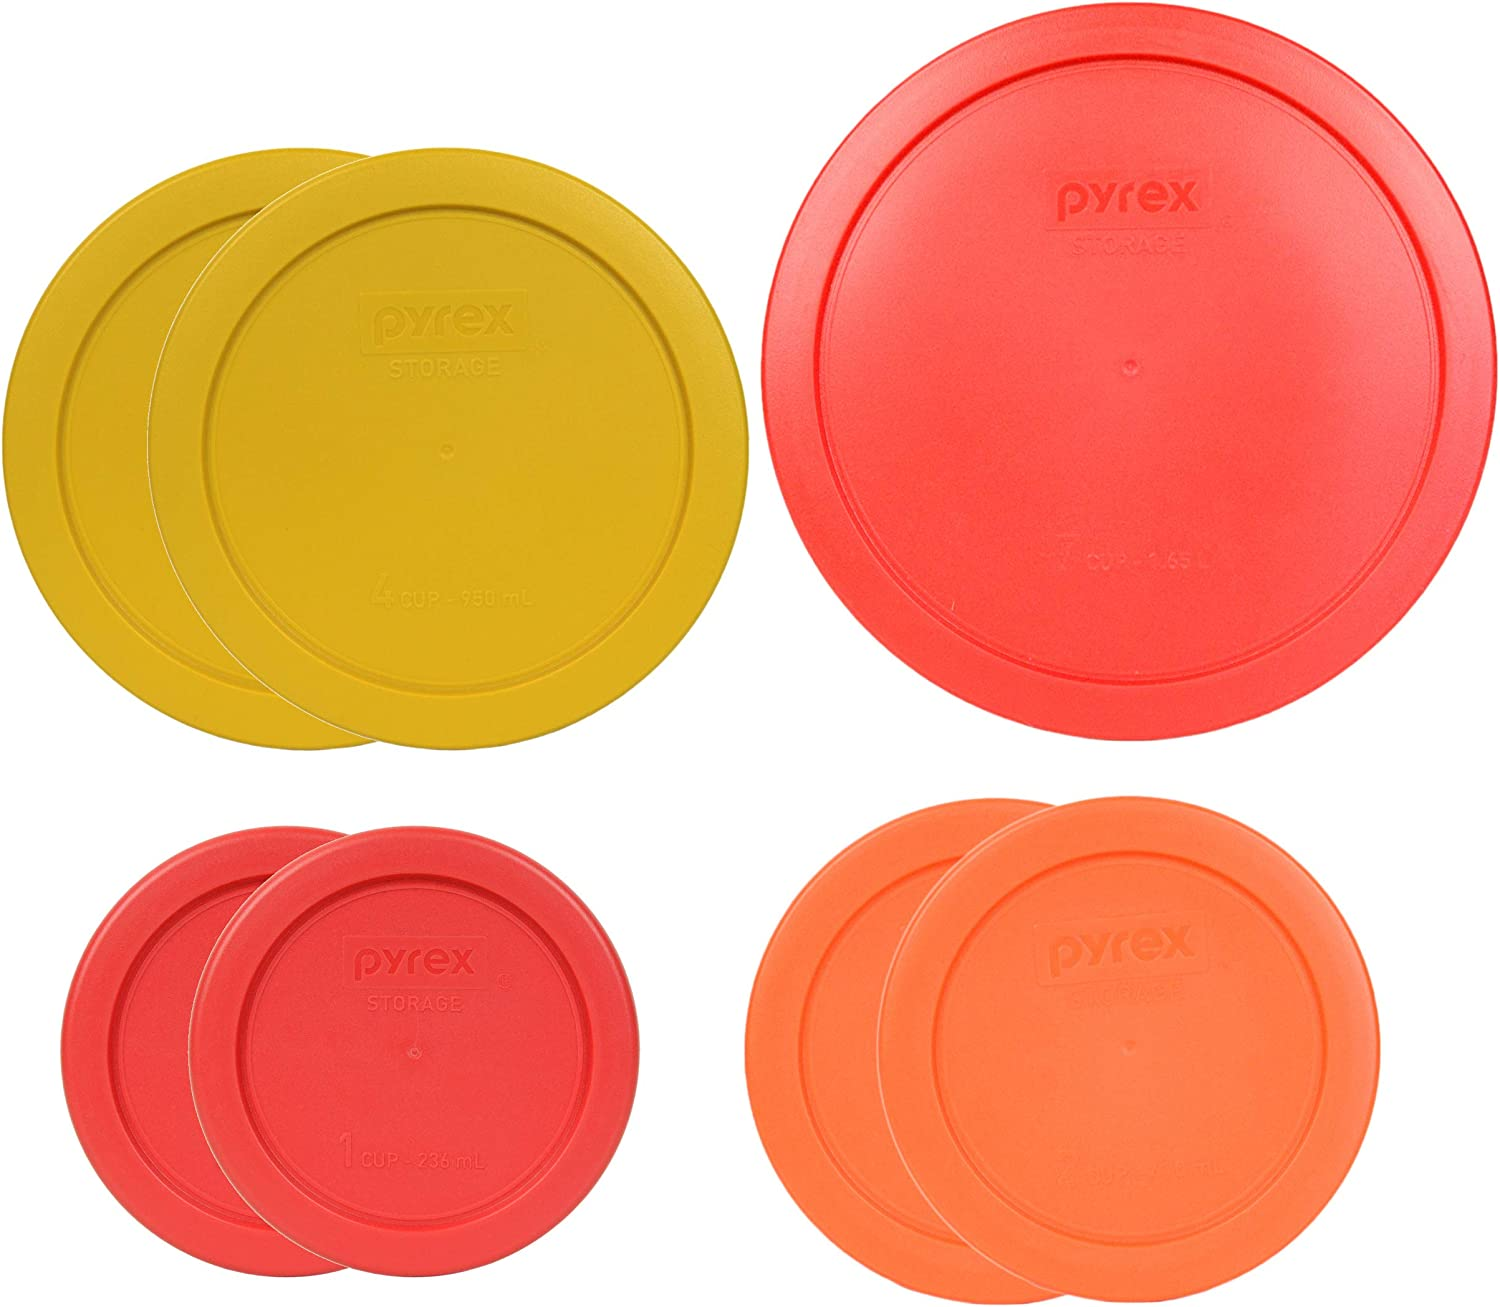 Pyrex (1) 7402-PC 6/7 Cup (2) 7201-PC 4 Cup (2) 7200-PC 2 Cup (2) 7202-PC 1 Cup Food Storage - 7 Piece Assorted Lids